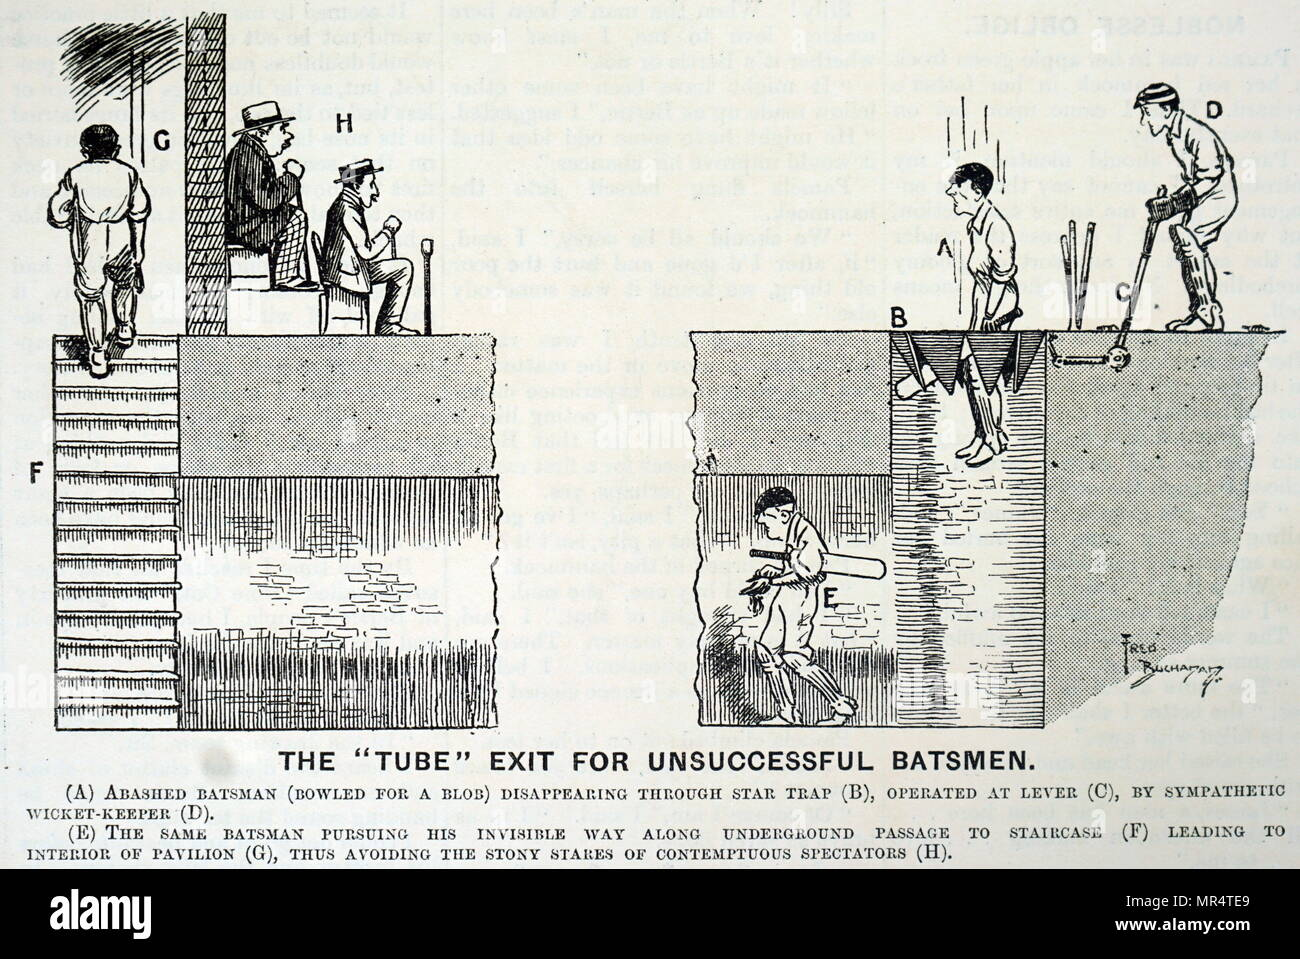 Cartoon depicting an idea for saving a failed batsman from the humiliation of walking to the pavilion under the gaze of spectators. Dated 20th century - Stock Image